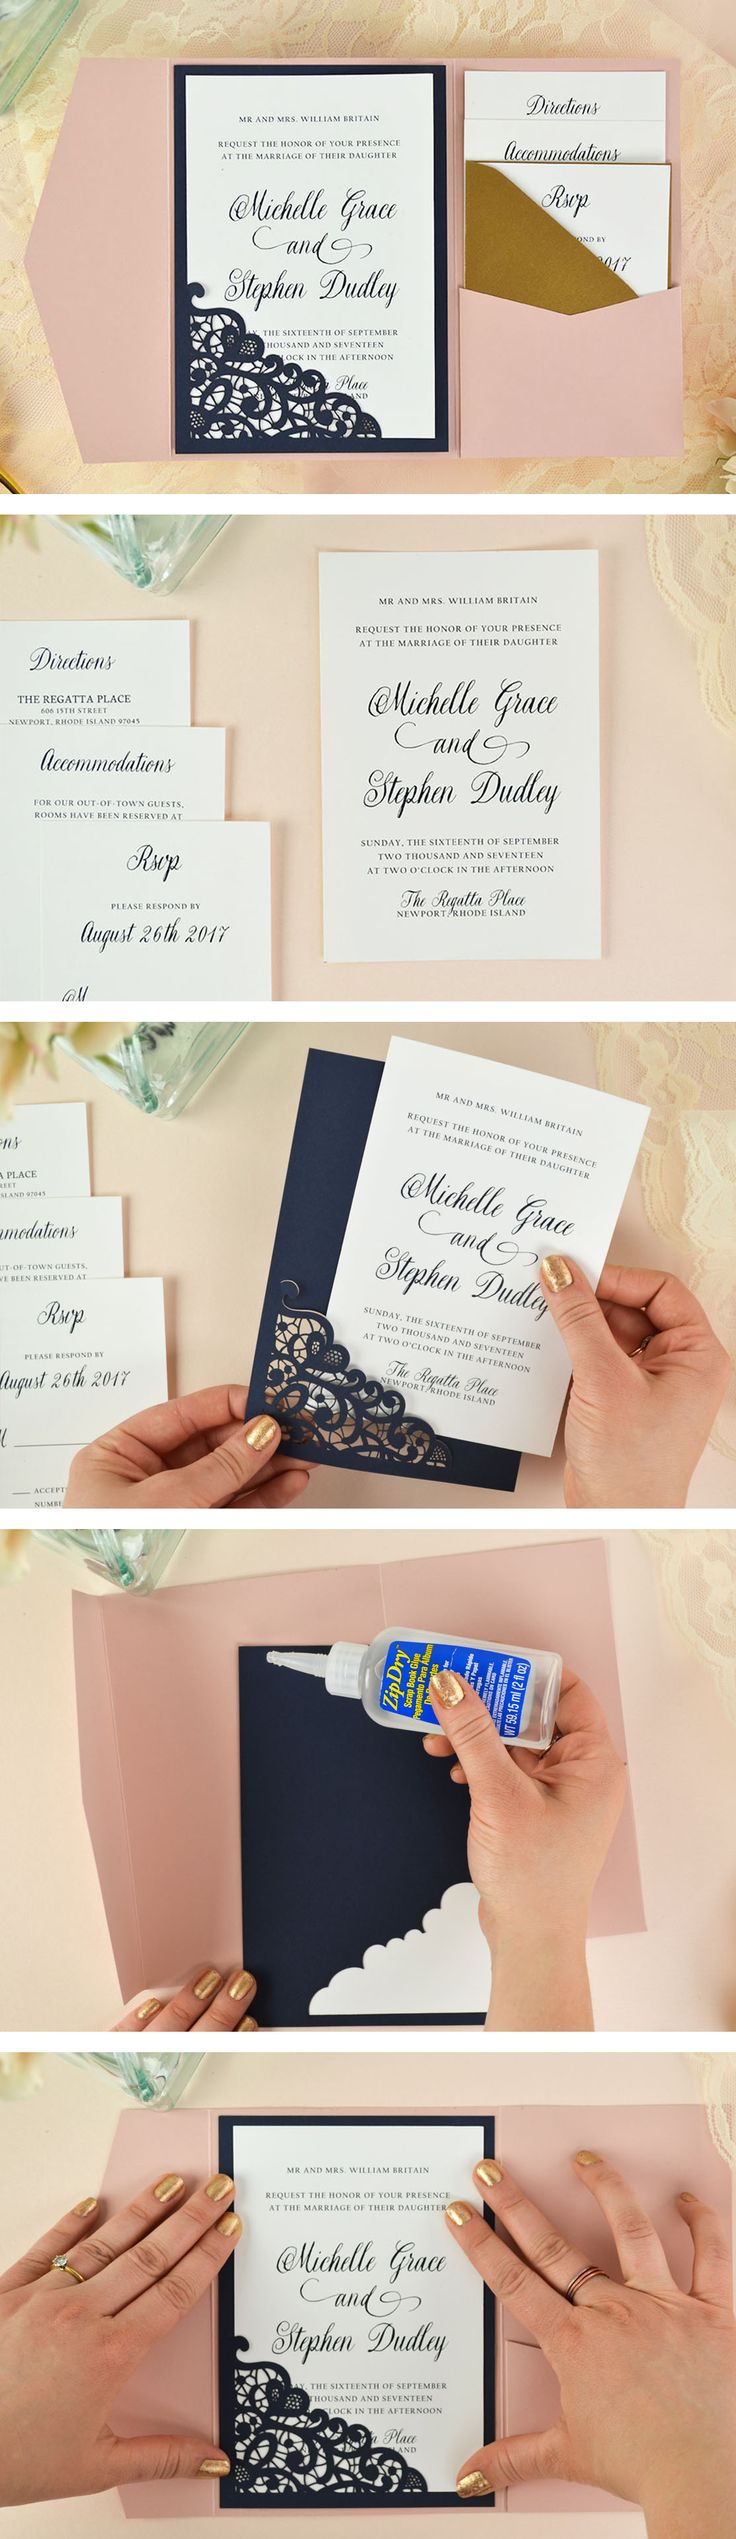 business event invitation templates%0A How to DIY Laser Wedding Invitations with Slidein Cards